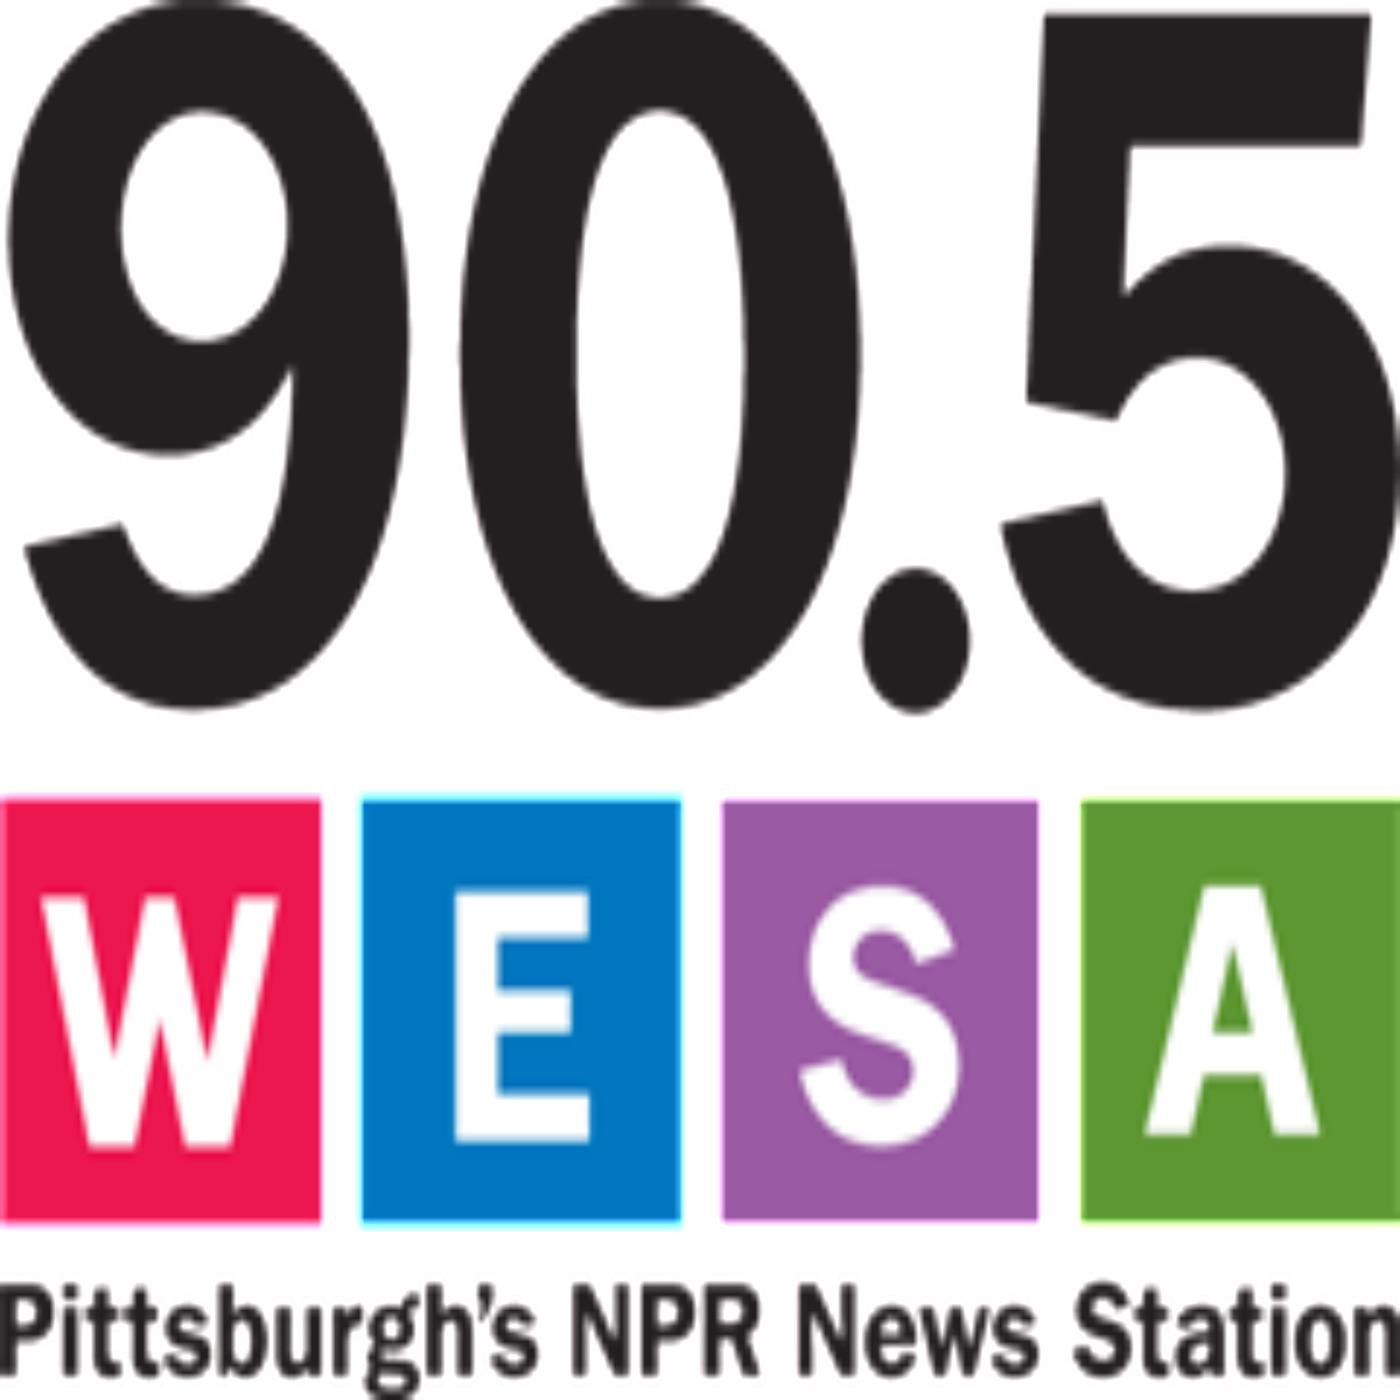 90.5 WESA: Speaking Volumes